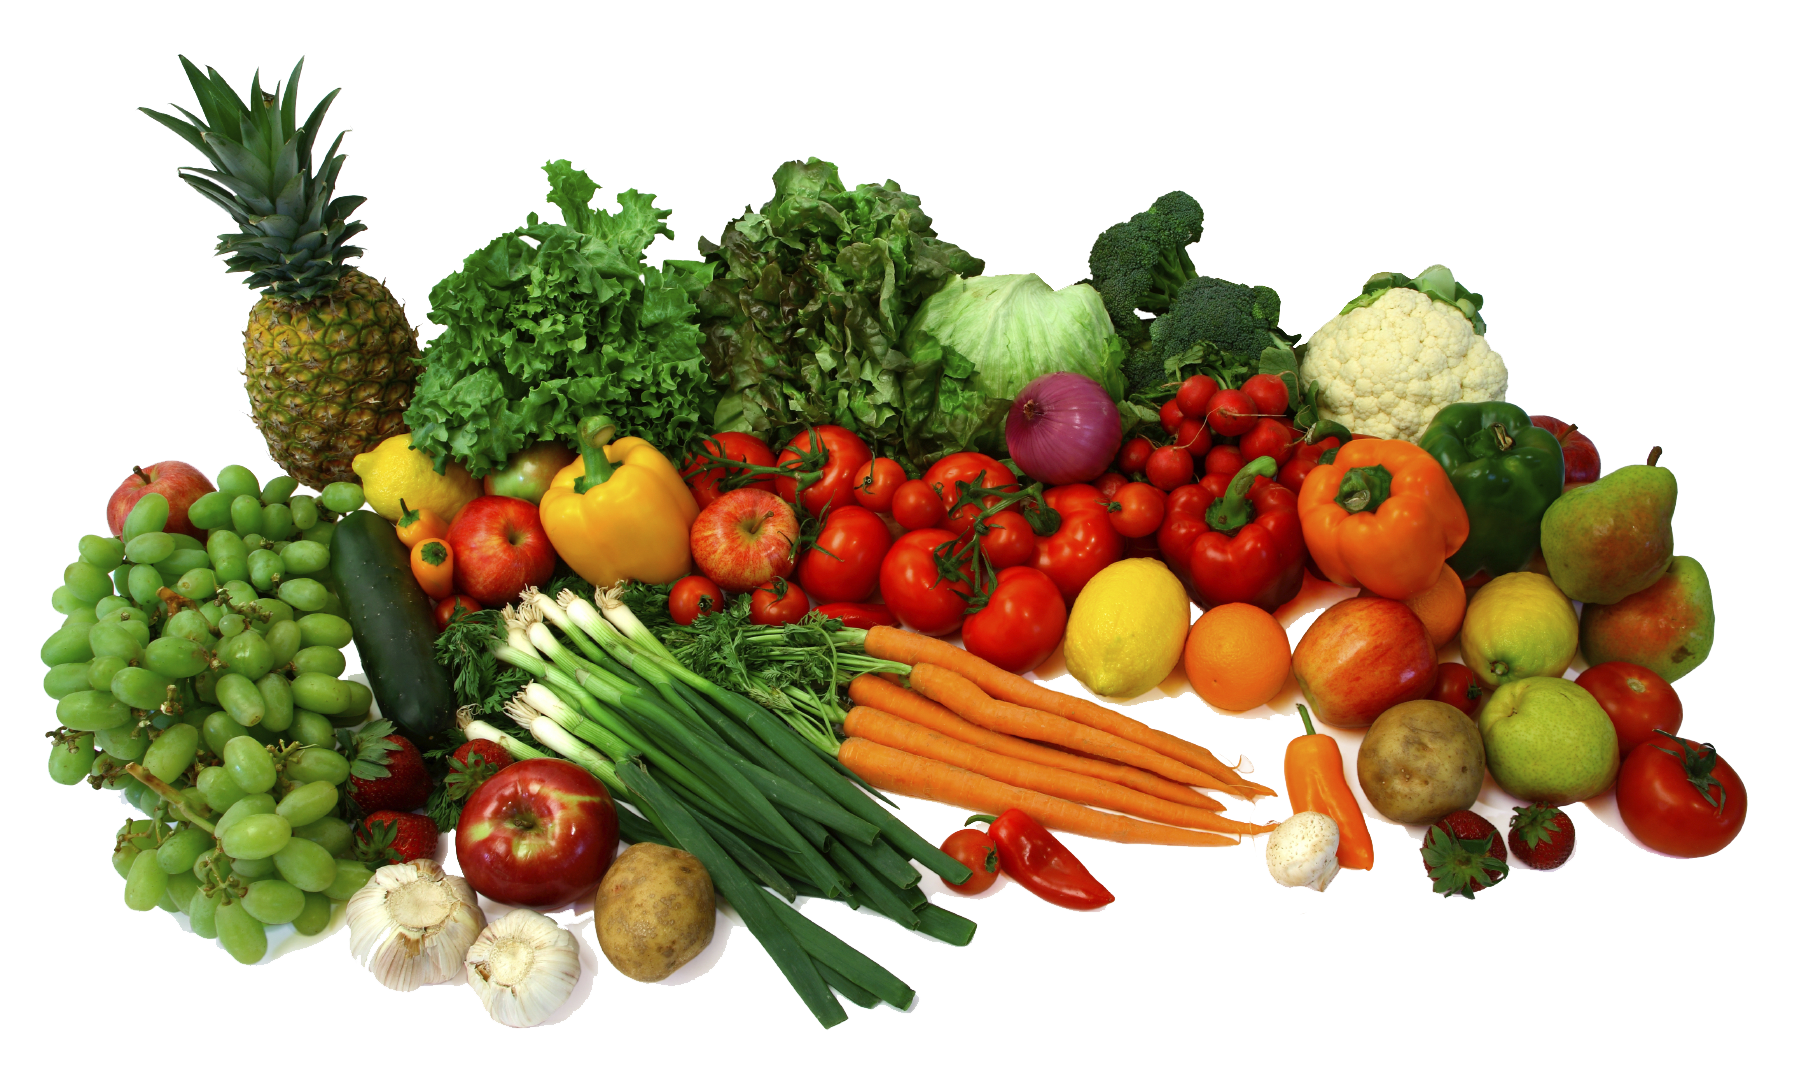 Vegetable Transparent Image PNG Image